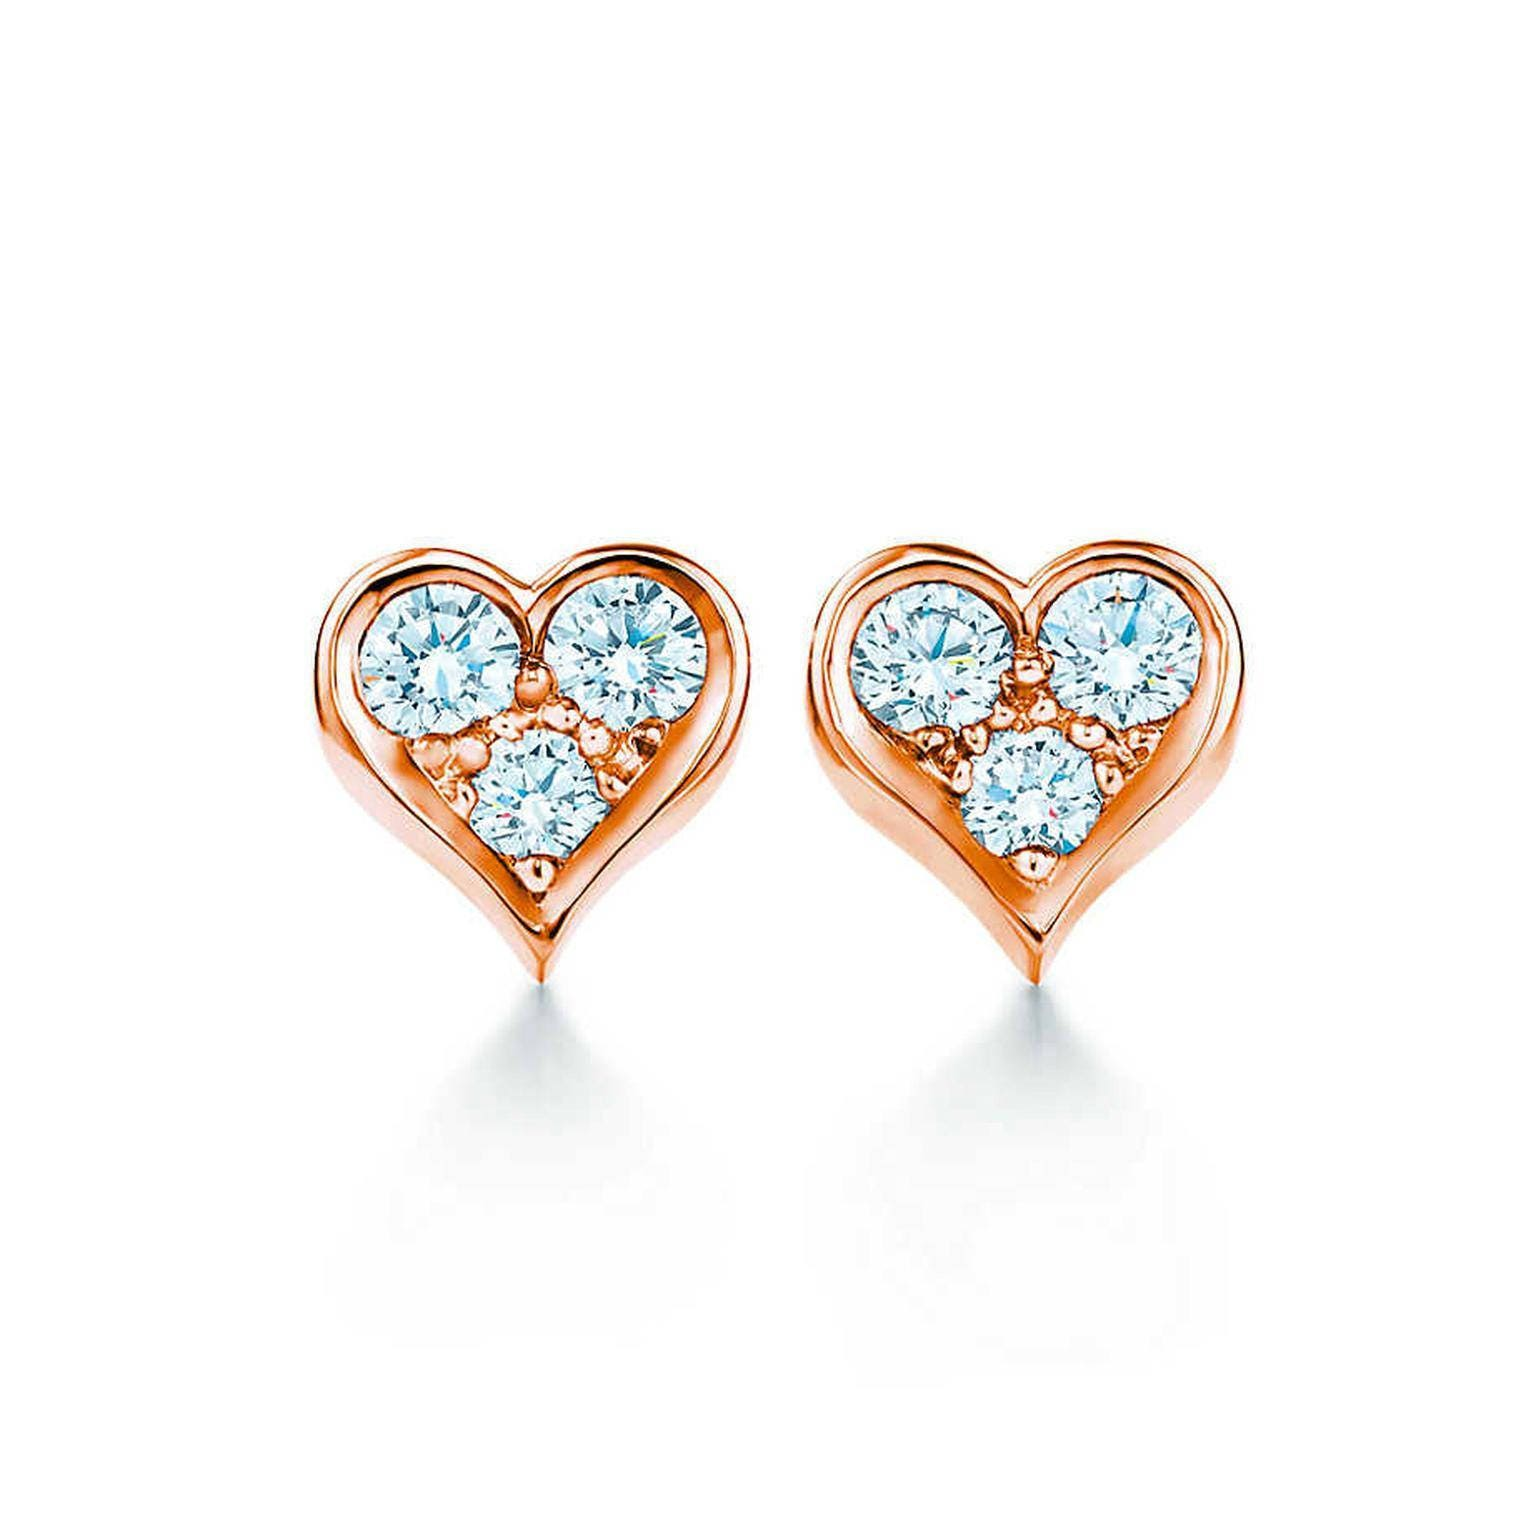 unique sale diamond shape jewellery diamonds wave new heart shaped earrings gold products